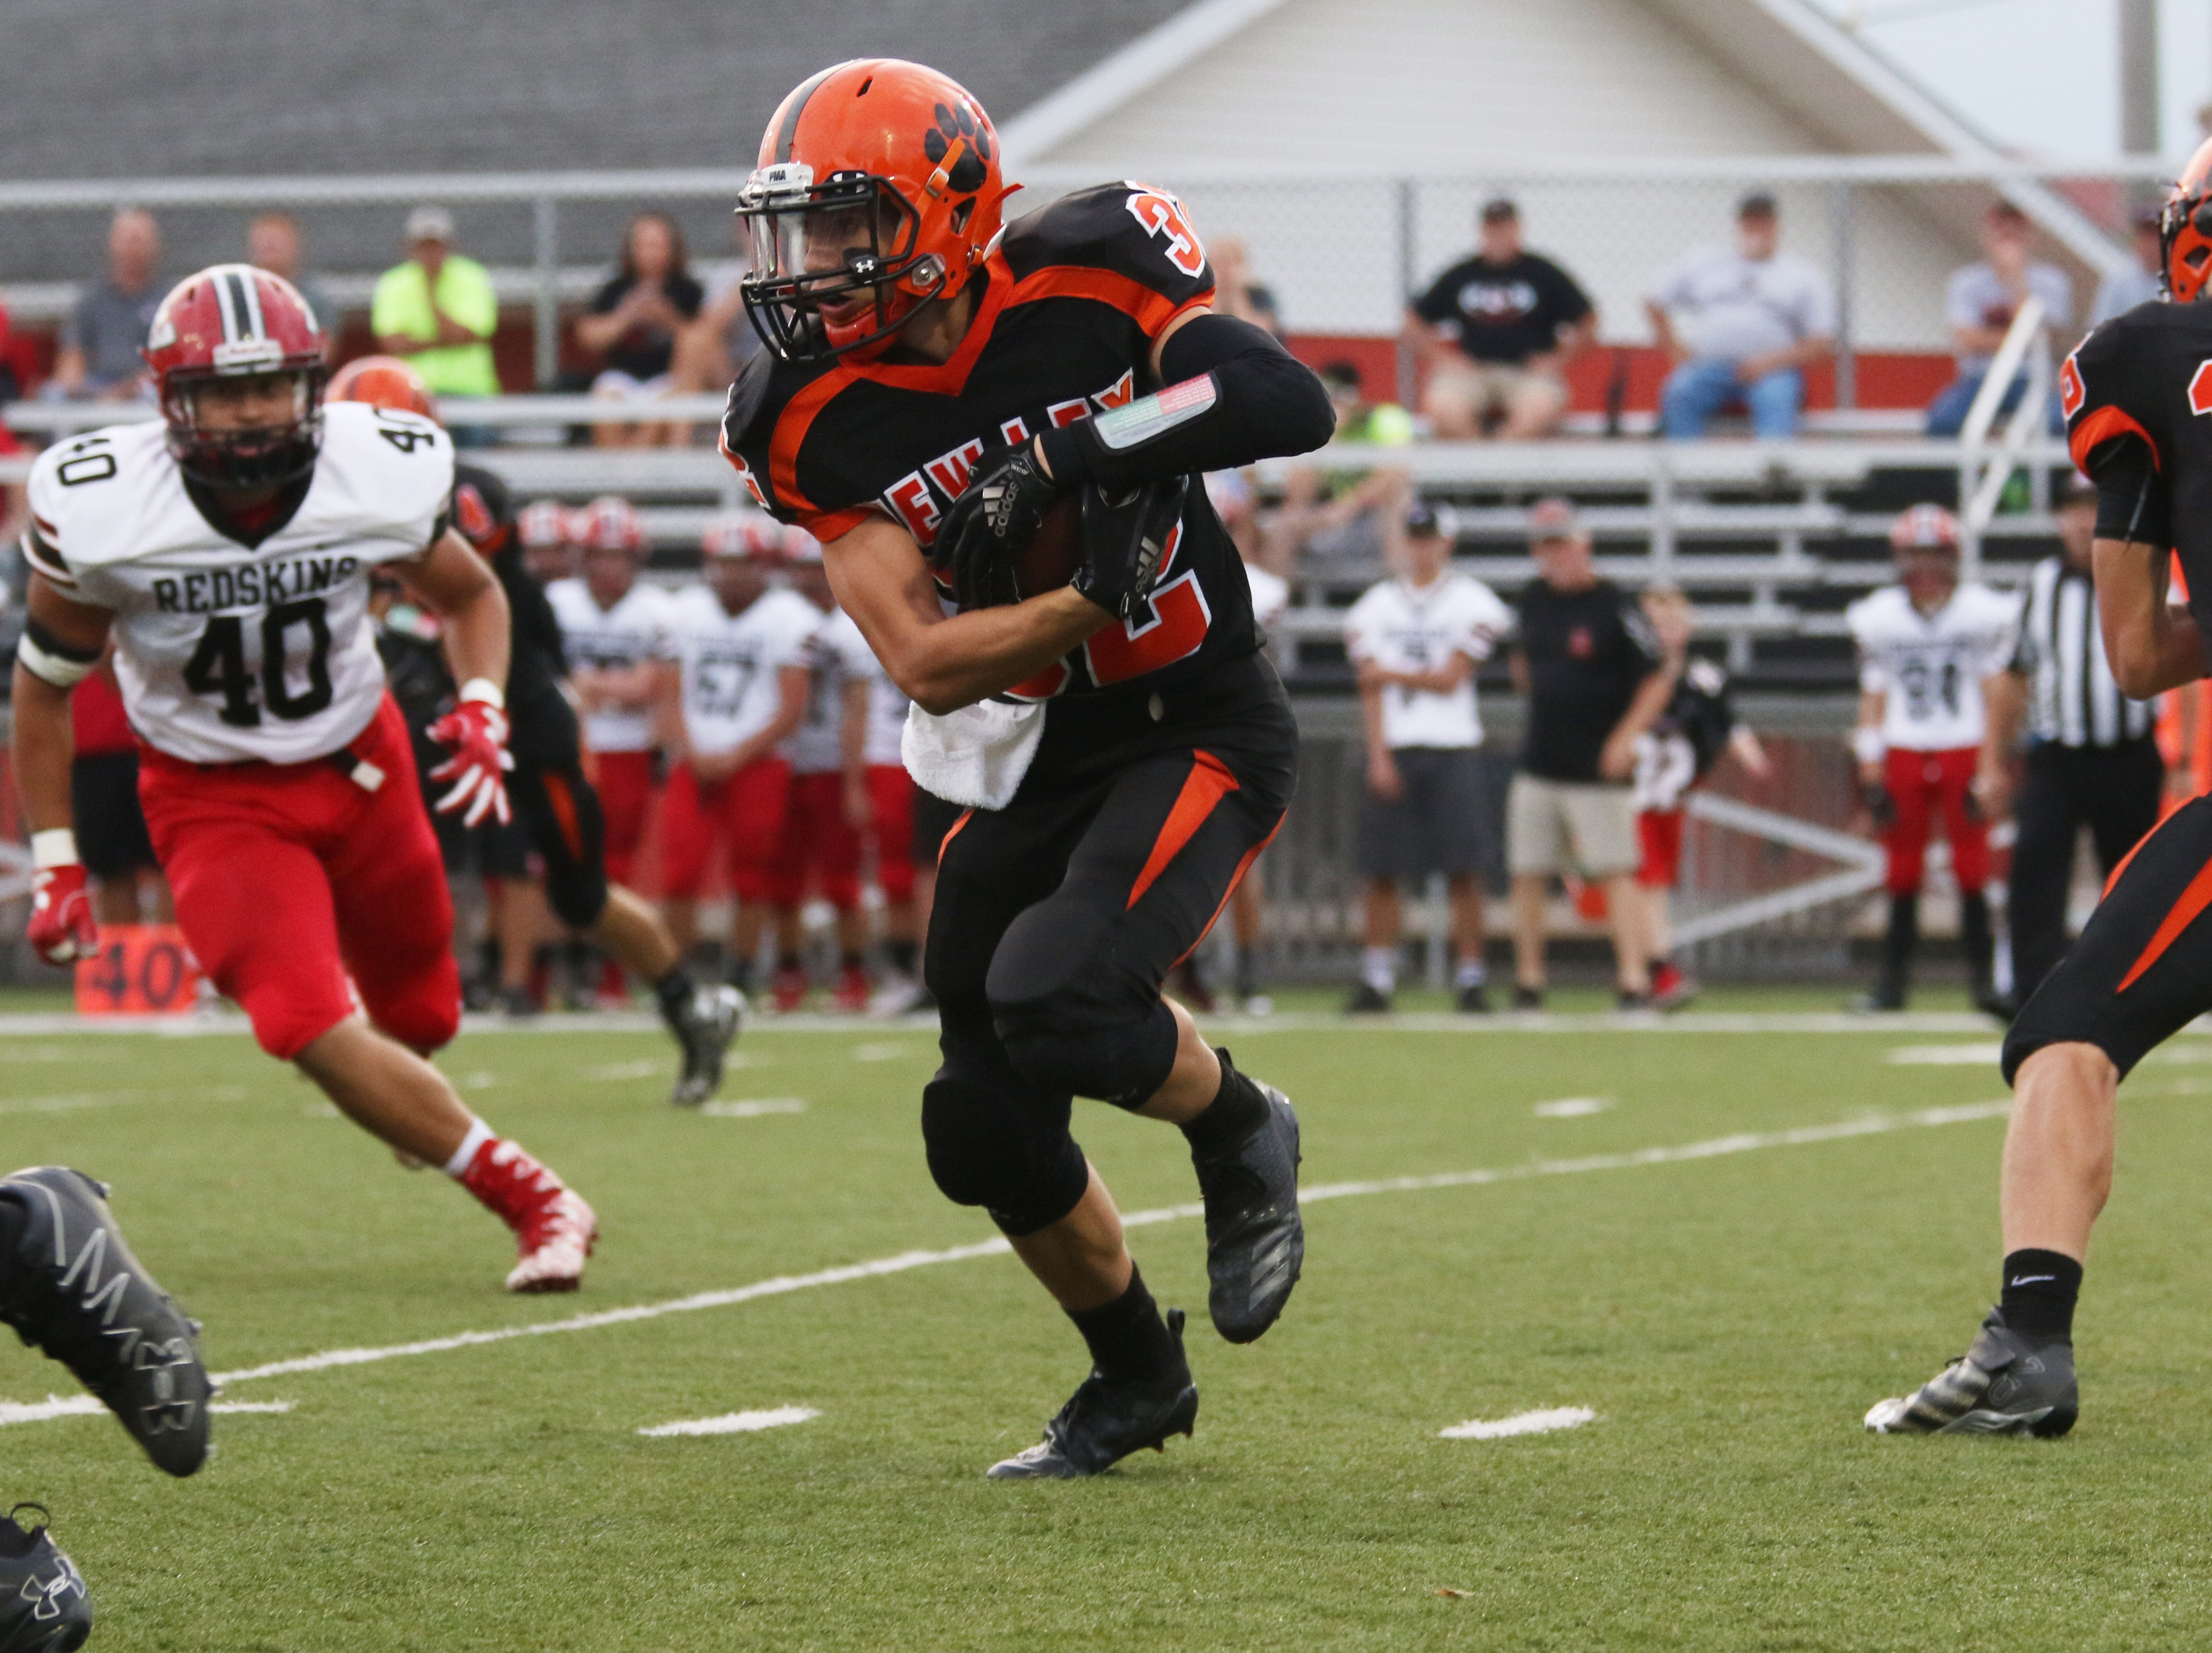 New Lexington's Blake Shepperd carries the ball against Coshocton.